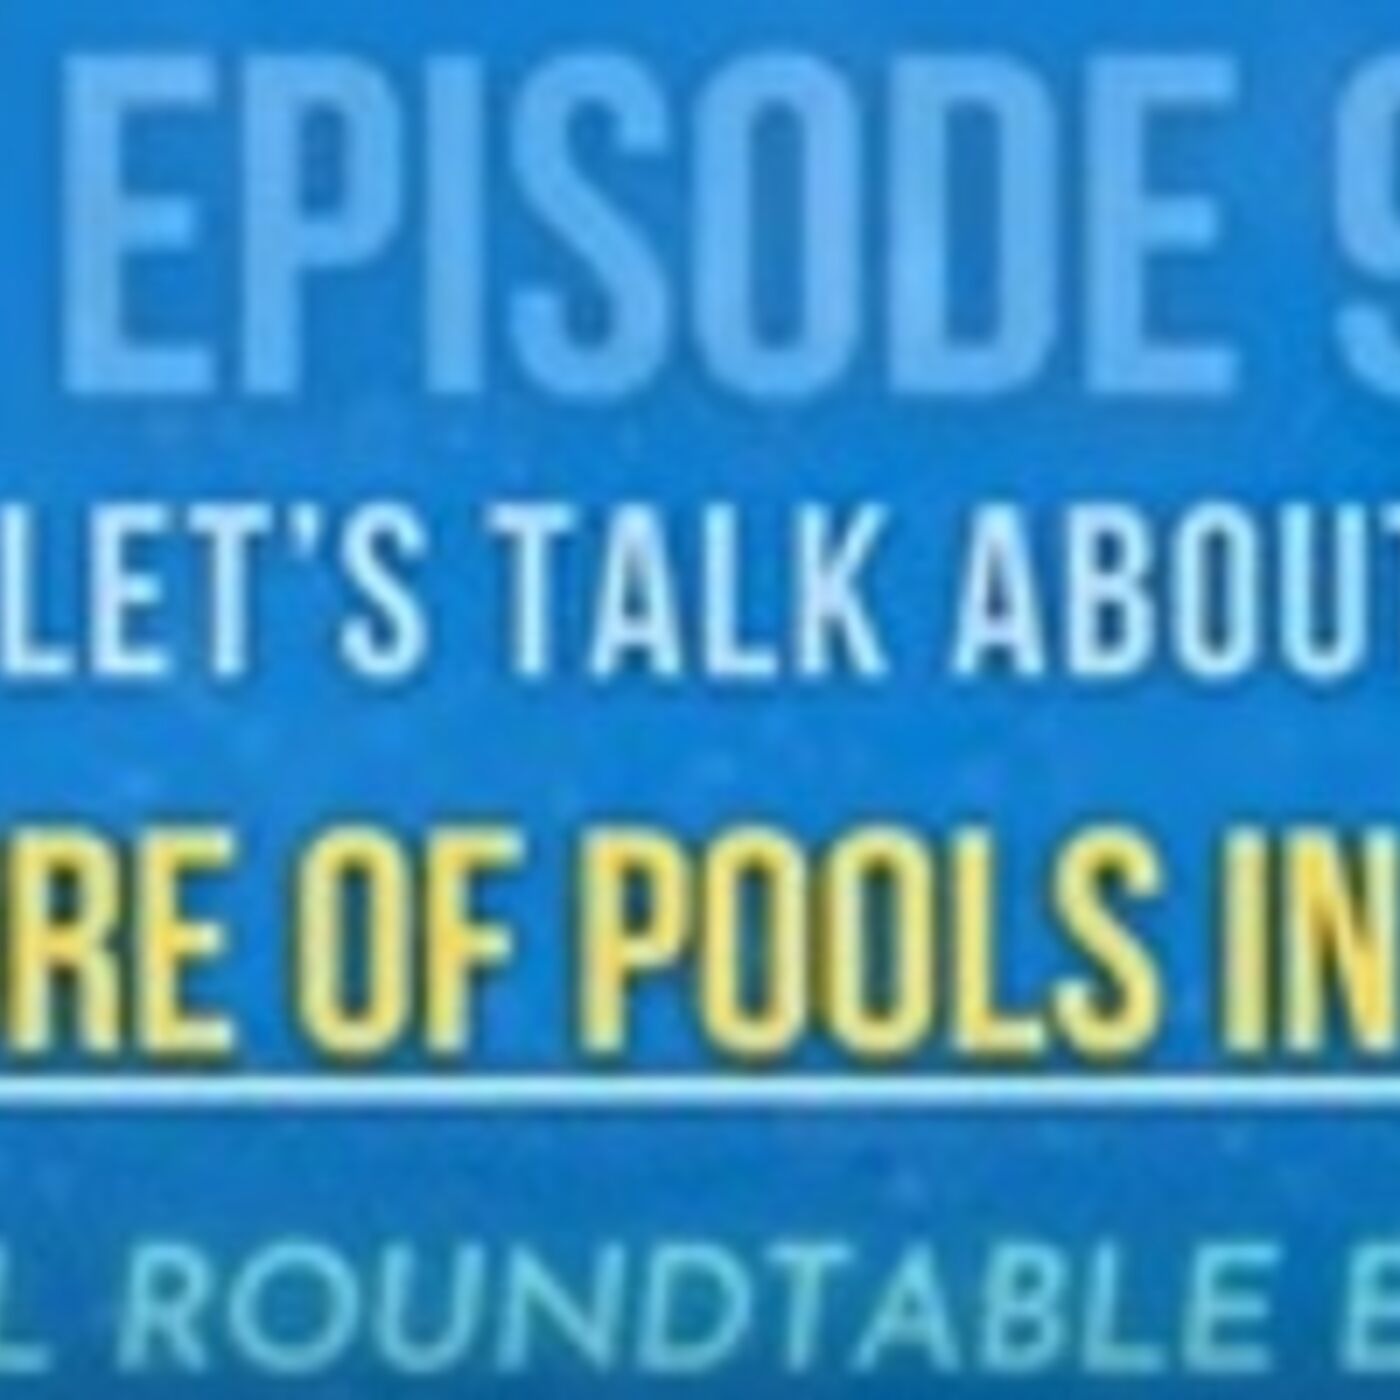 Let's Talk About Future of Pools in 2021: Special Roundtable Episode